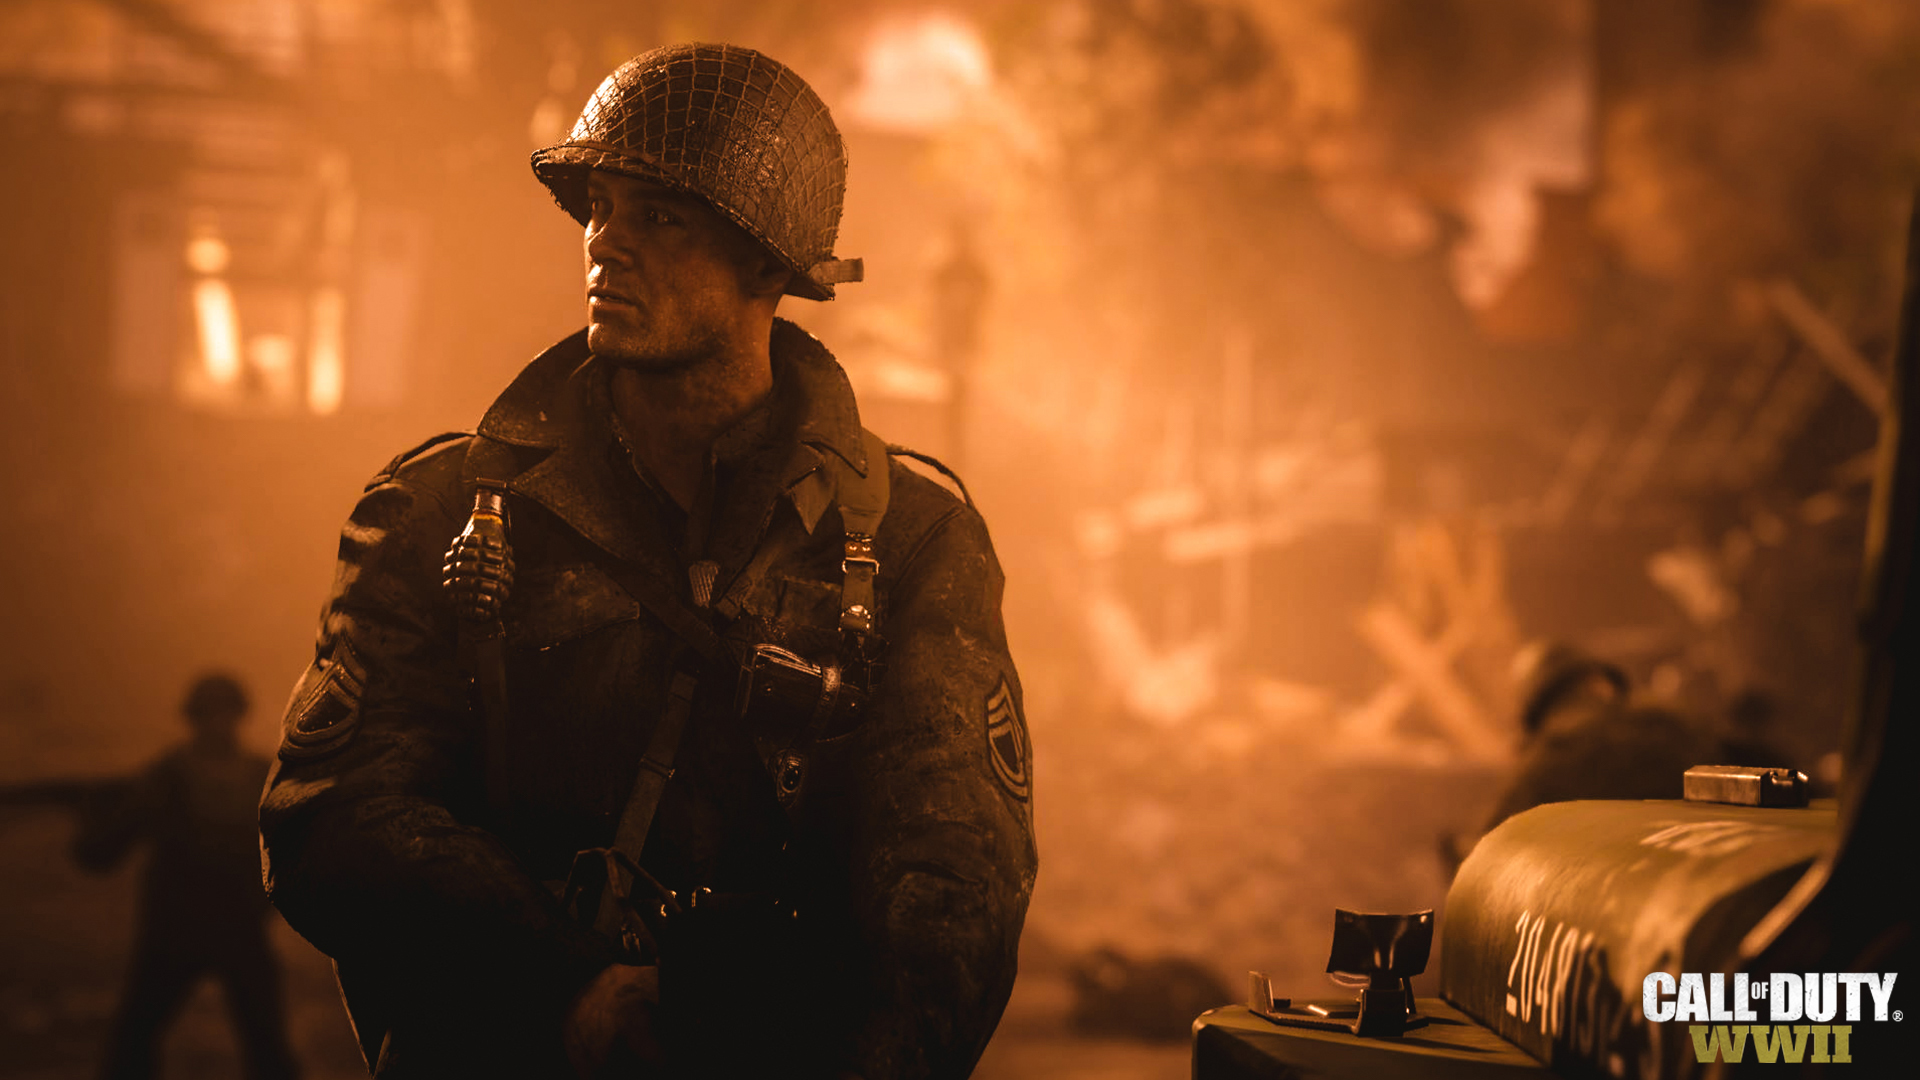 First trailer: 'Call of Duty: WWII' seeks to up authenticity, fidelity